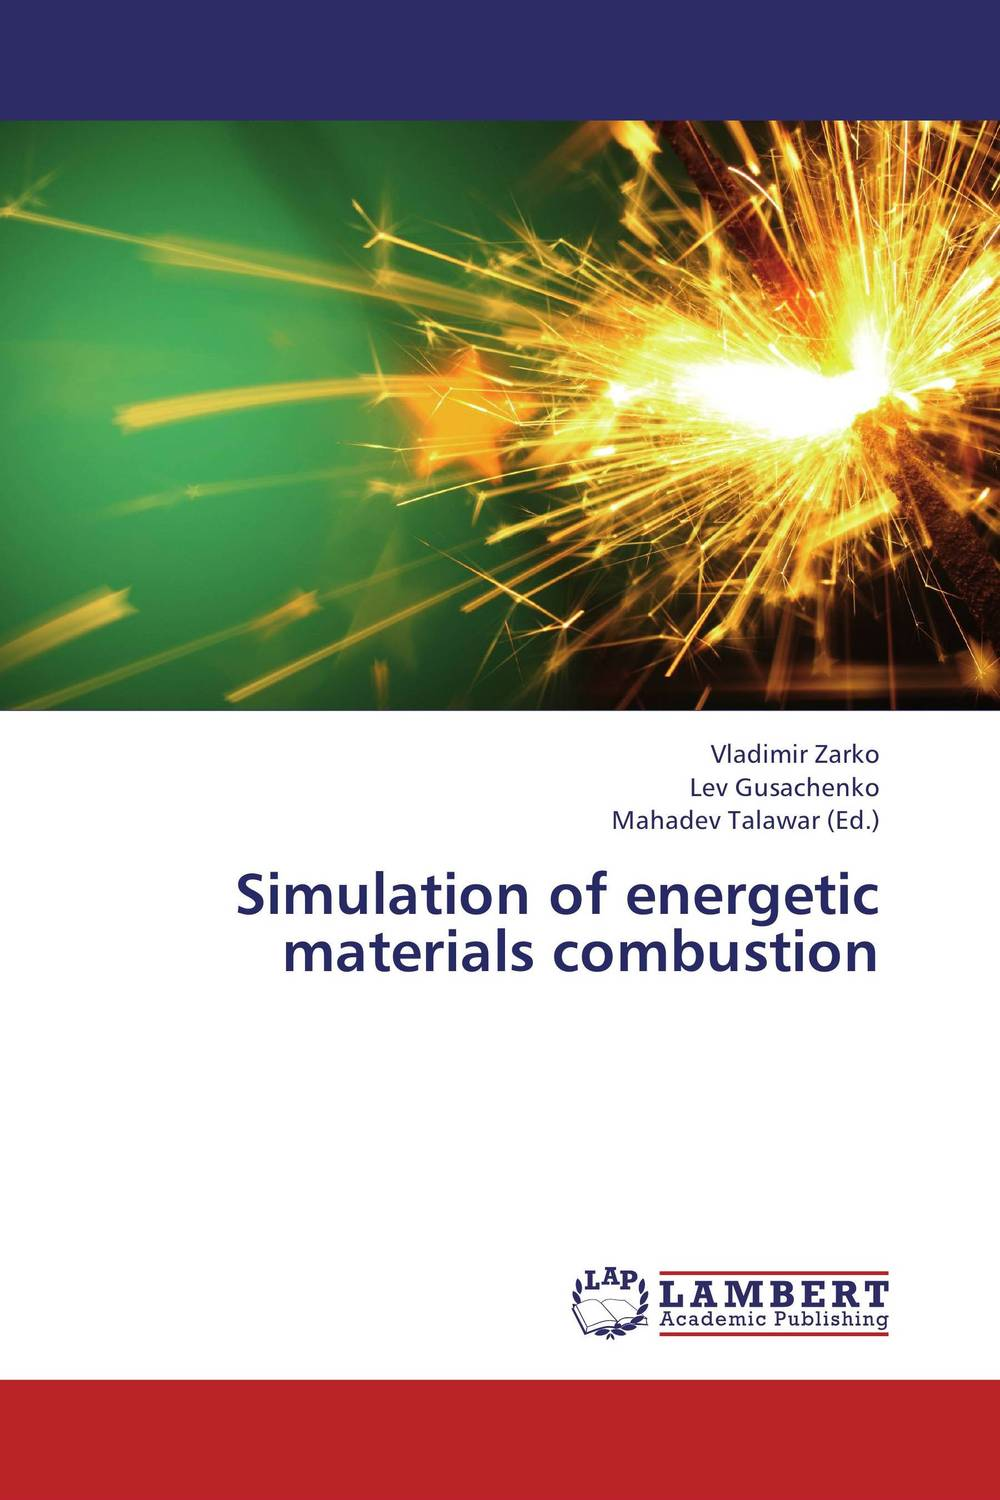 Simulation of energetic materials combustion thermo operated water valves can be used in food processing equipments biomass boilers and hydraulic systems